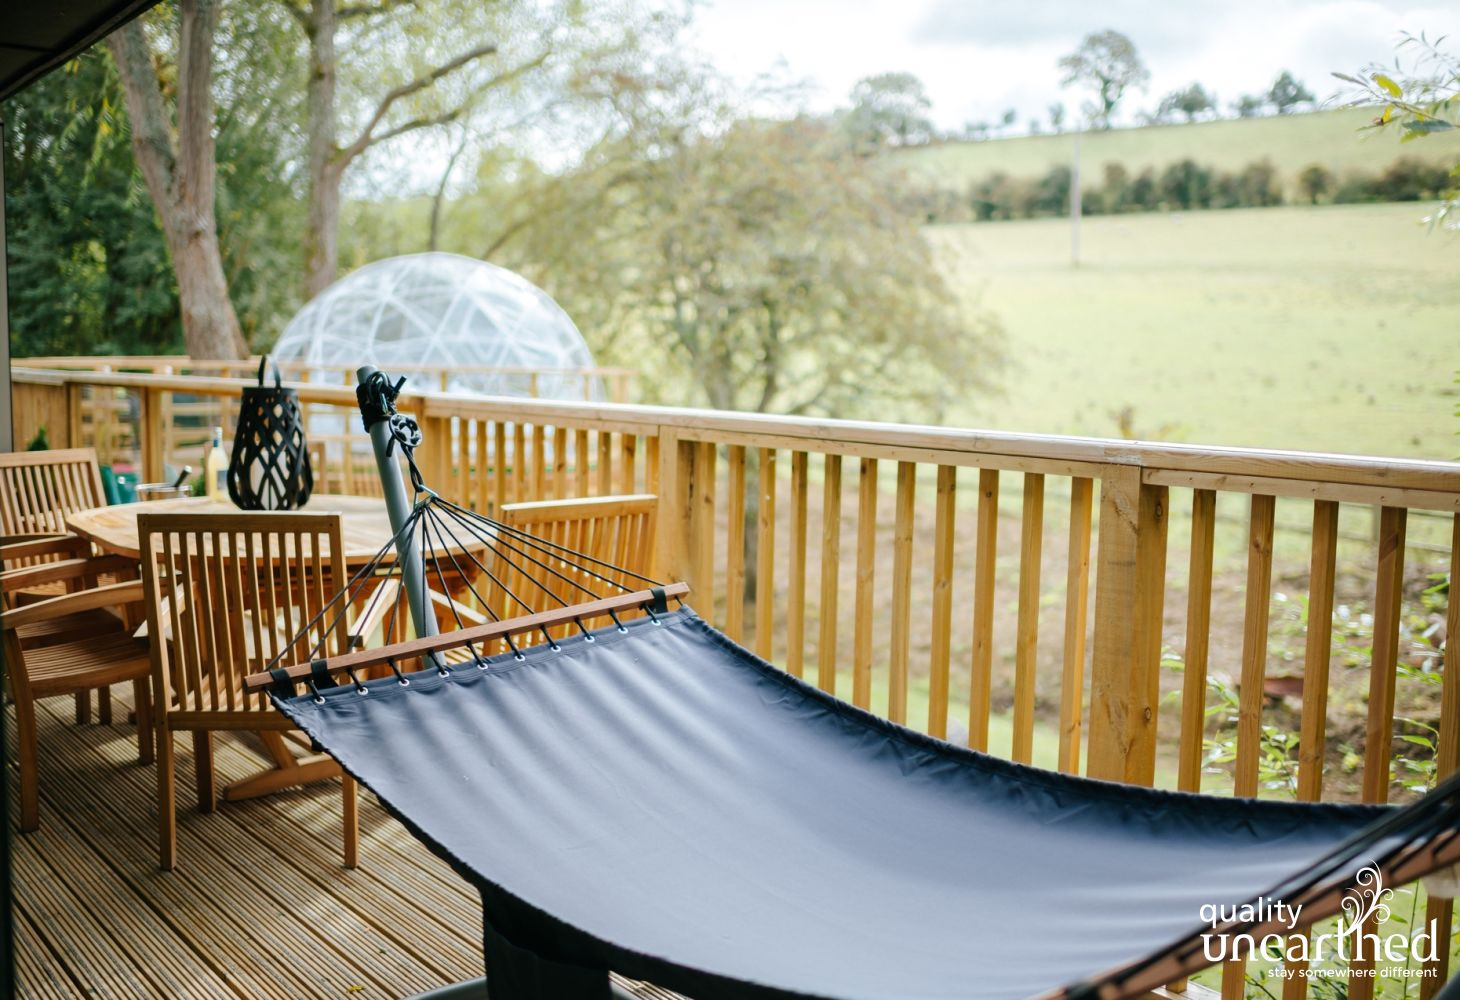 A full size hammock beckons guests of the family treehouse to relax